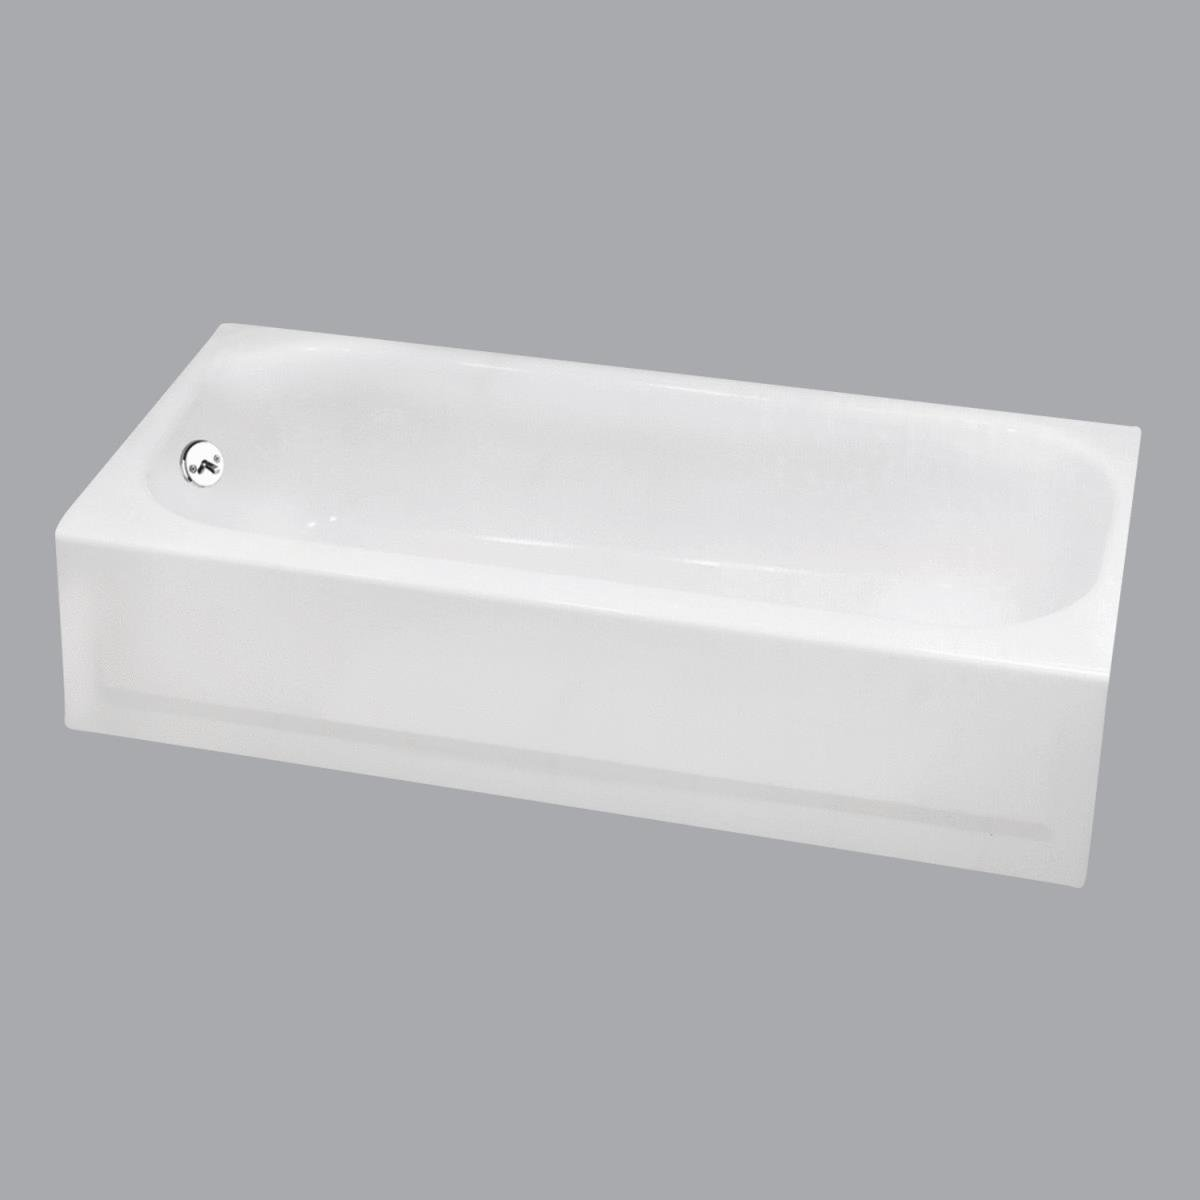 BRIGGS Porcelain Enameled Steel Bathtub